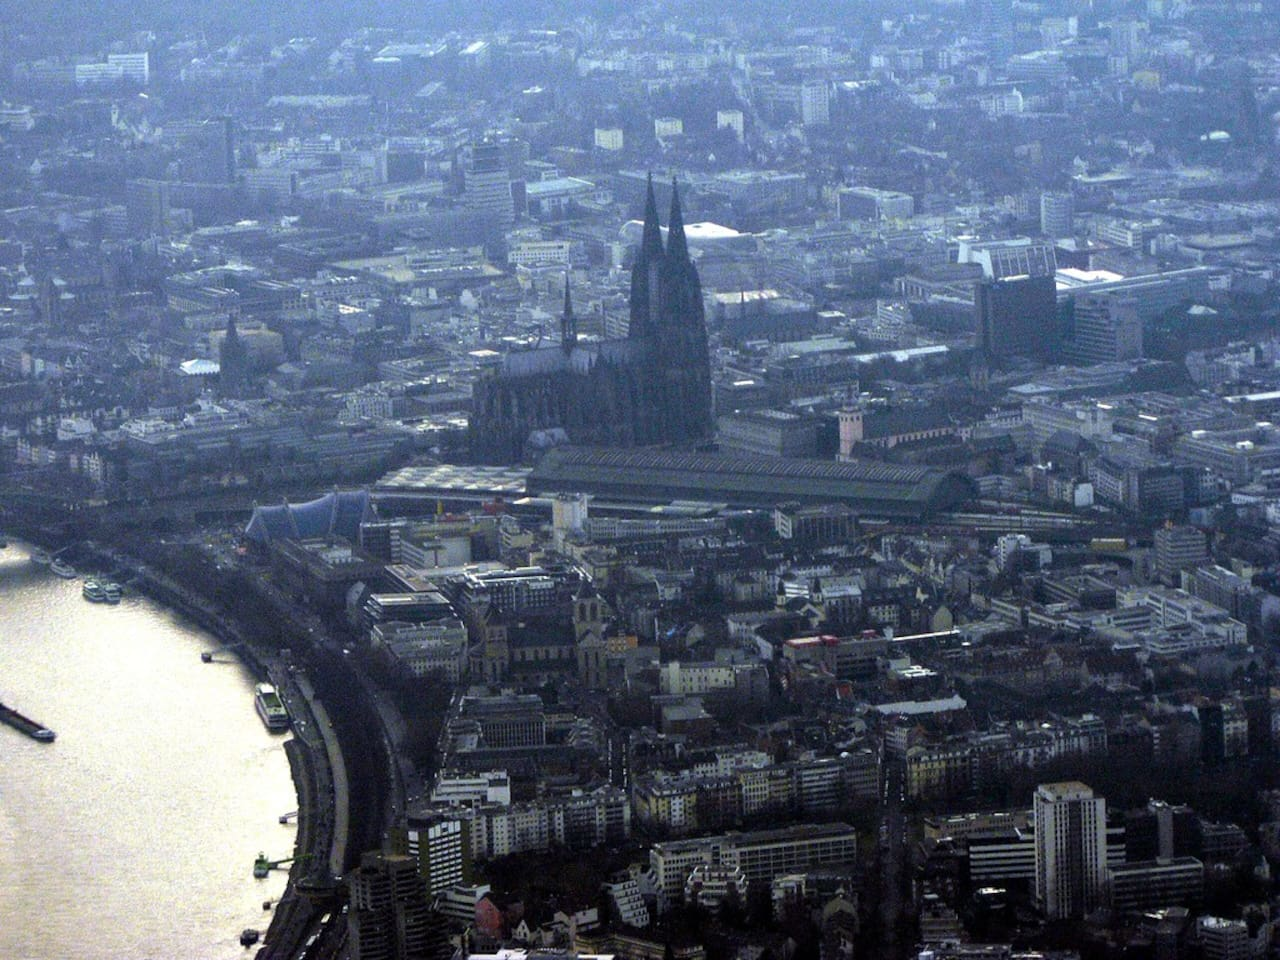 Cologne Cathedral (der Dom, not a view out our window!) - 15 min. walk from our door!